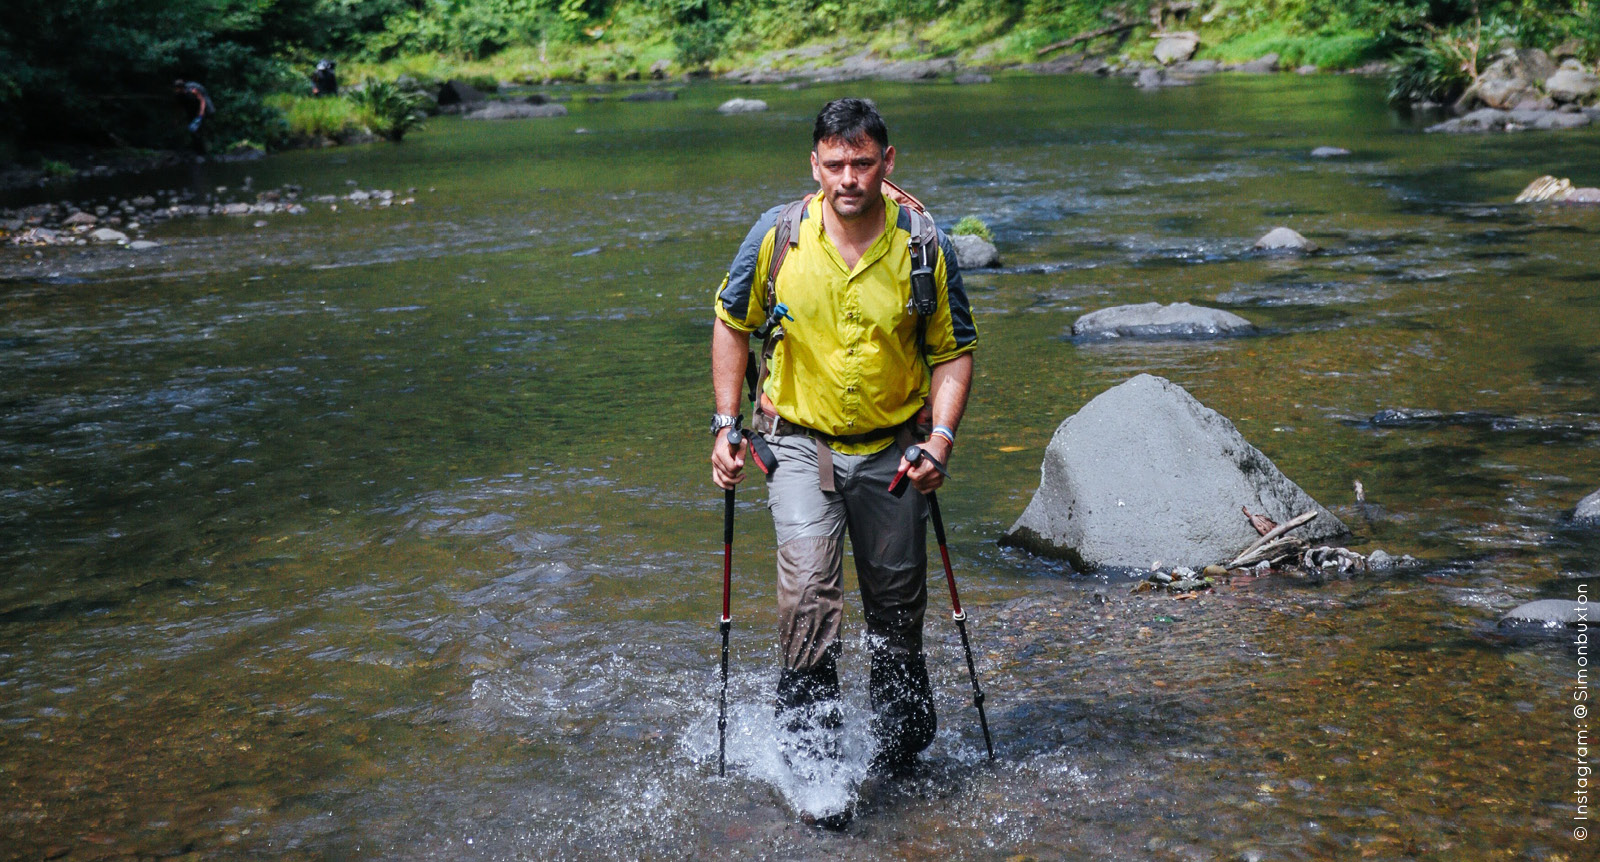 No jungle expedition is complete without wading through running water. Rick demonstrates this in the depths of the Darien Gap